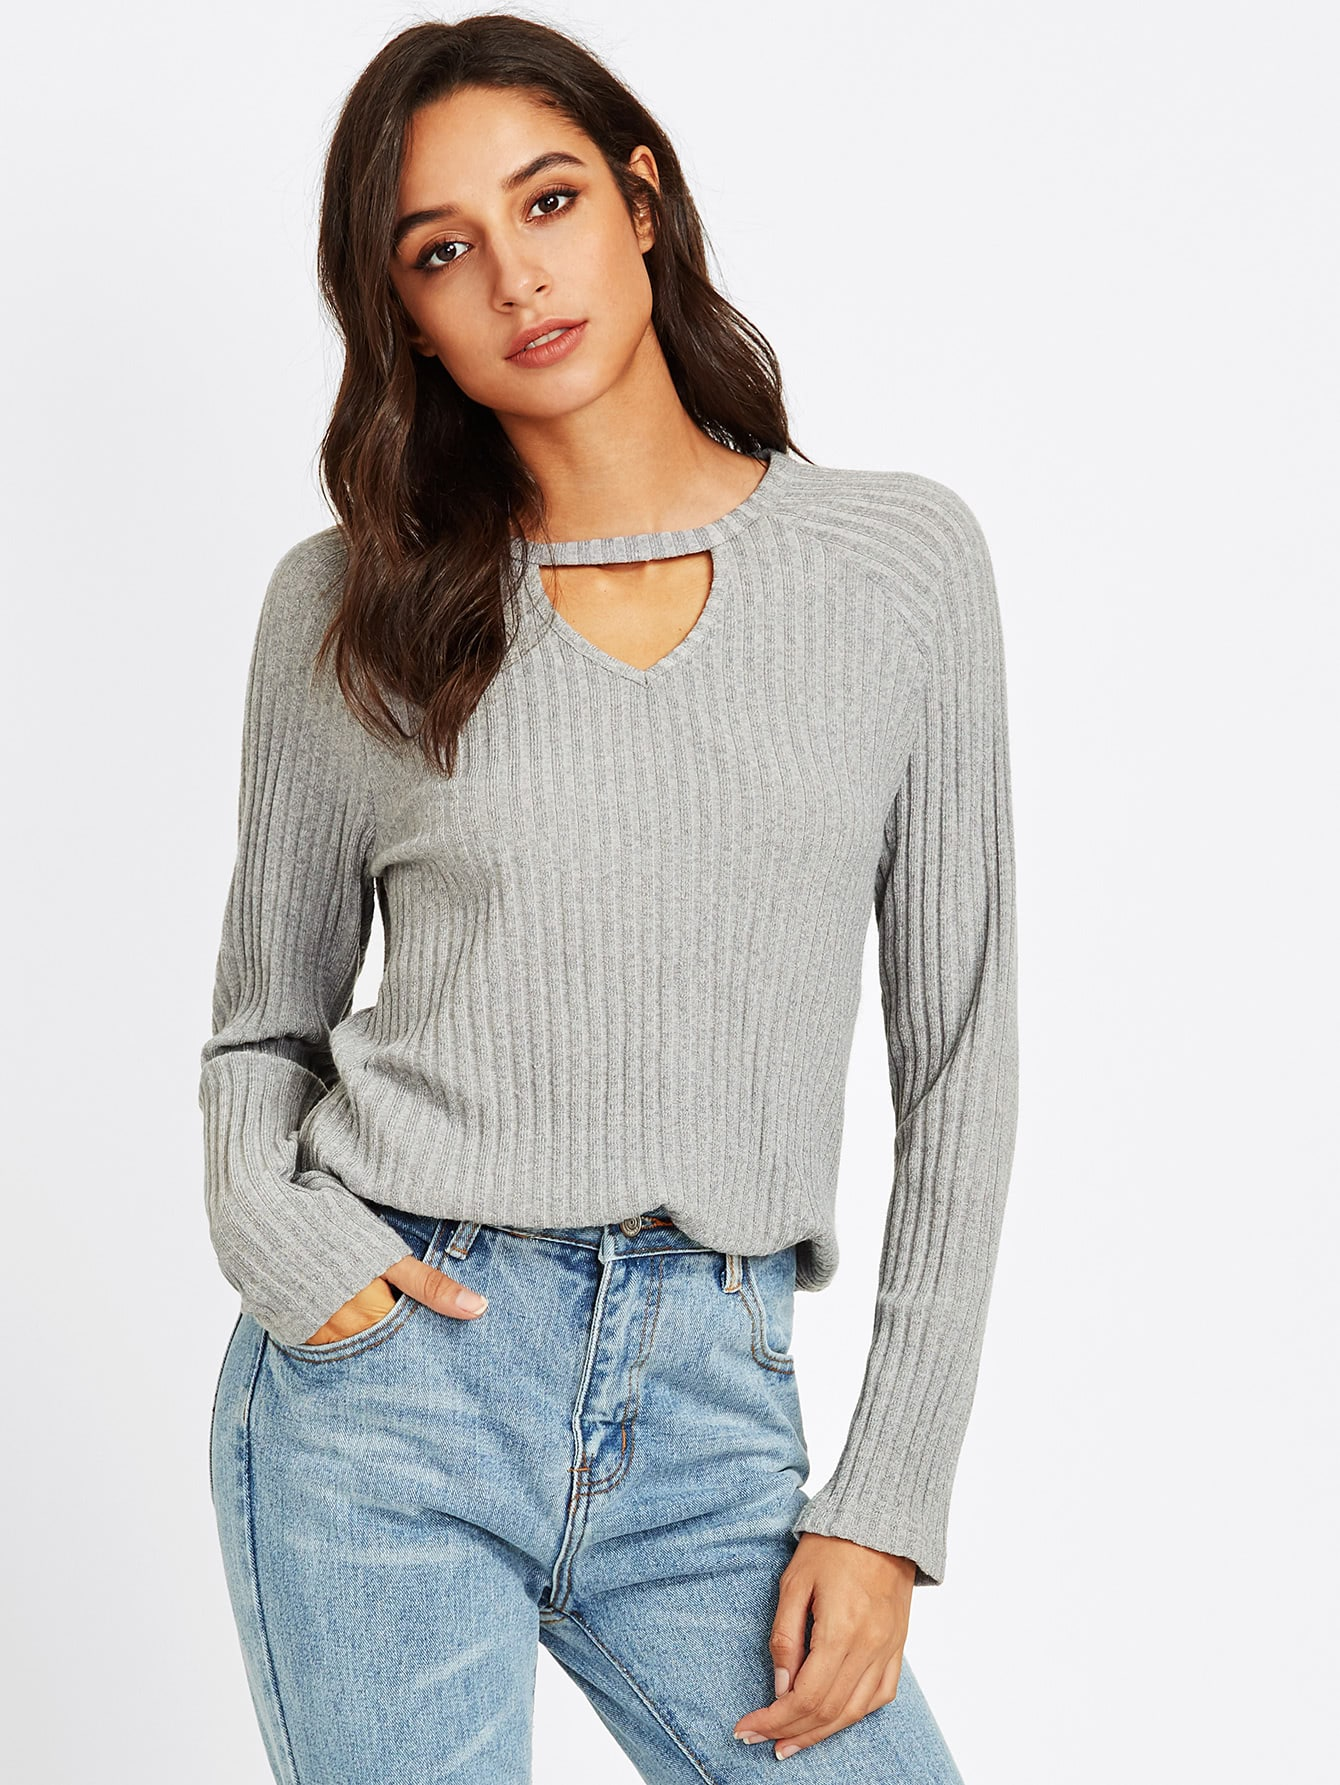 V Cut Neck Ribbed Knit Top tee170905703